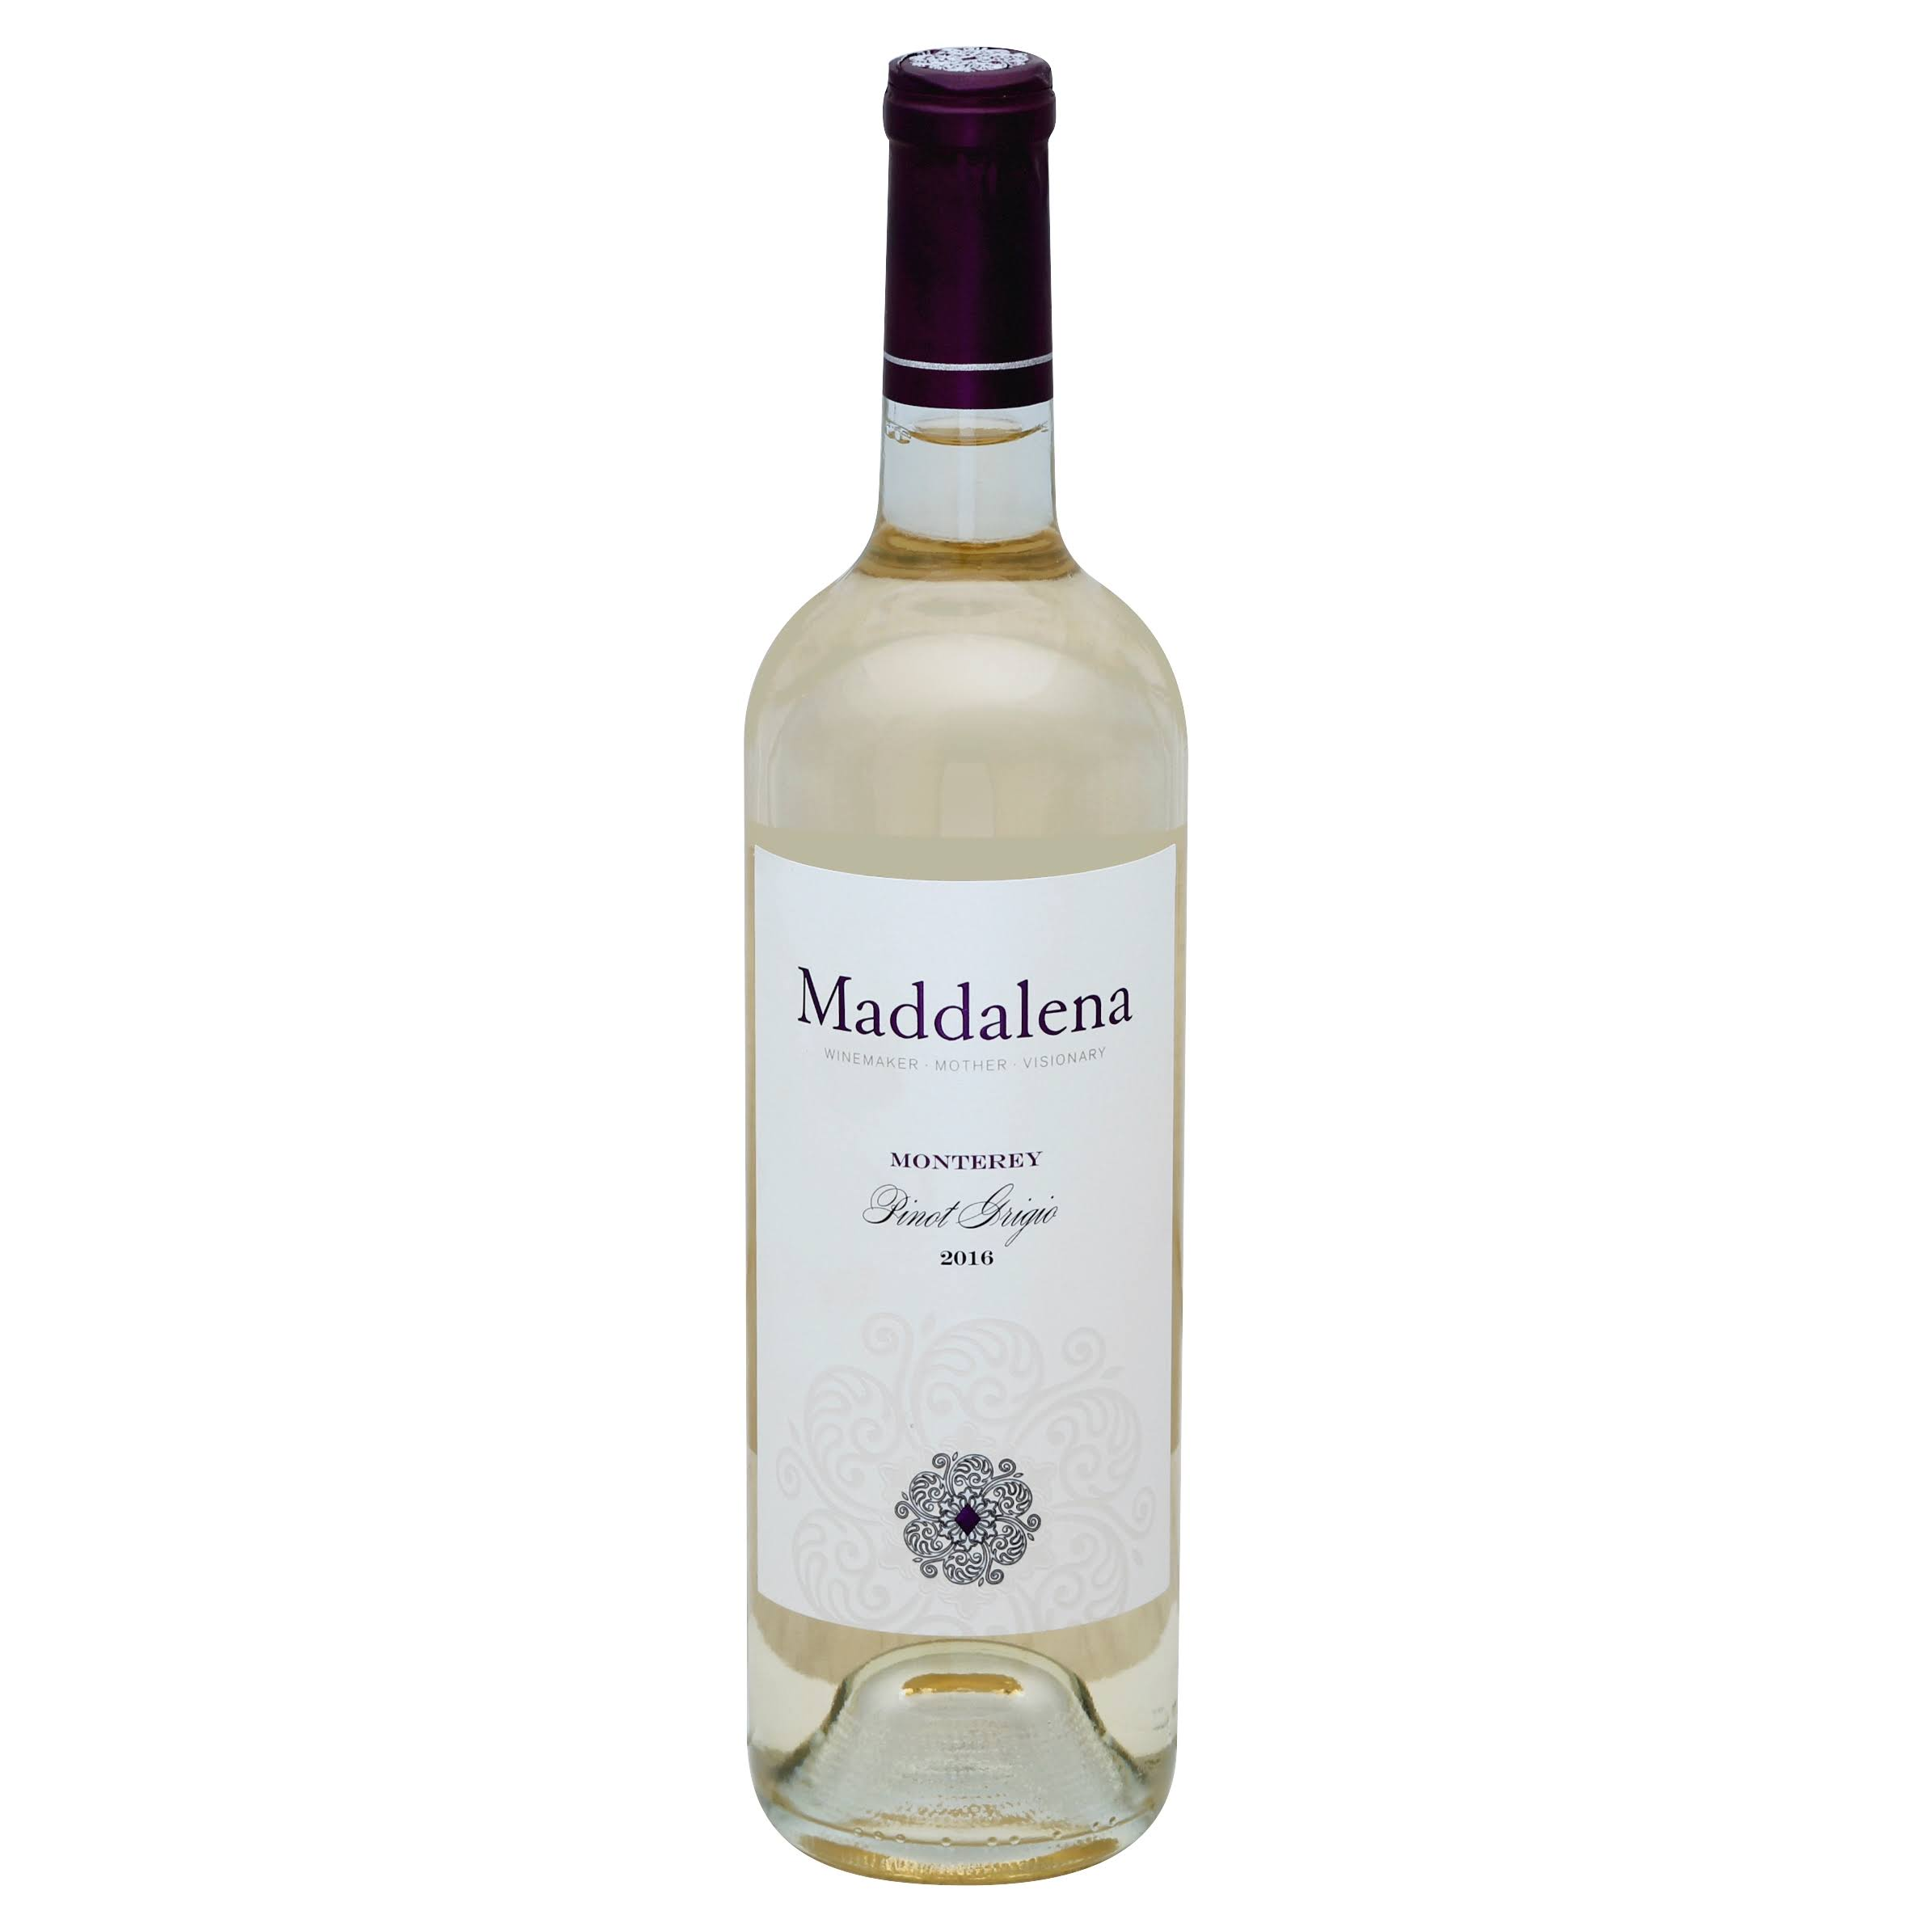 Maddalena Pinot Grigio, Monterey (Vintage Varies) - 750 ml bottle